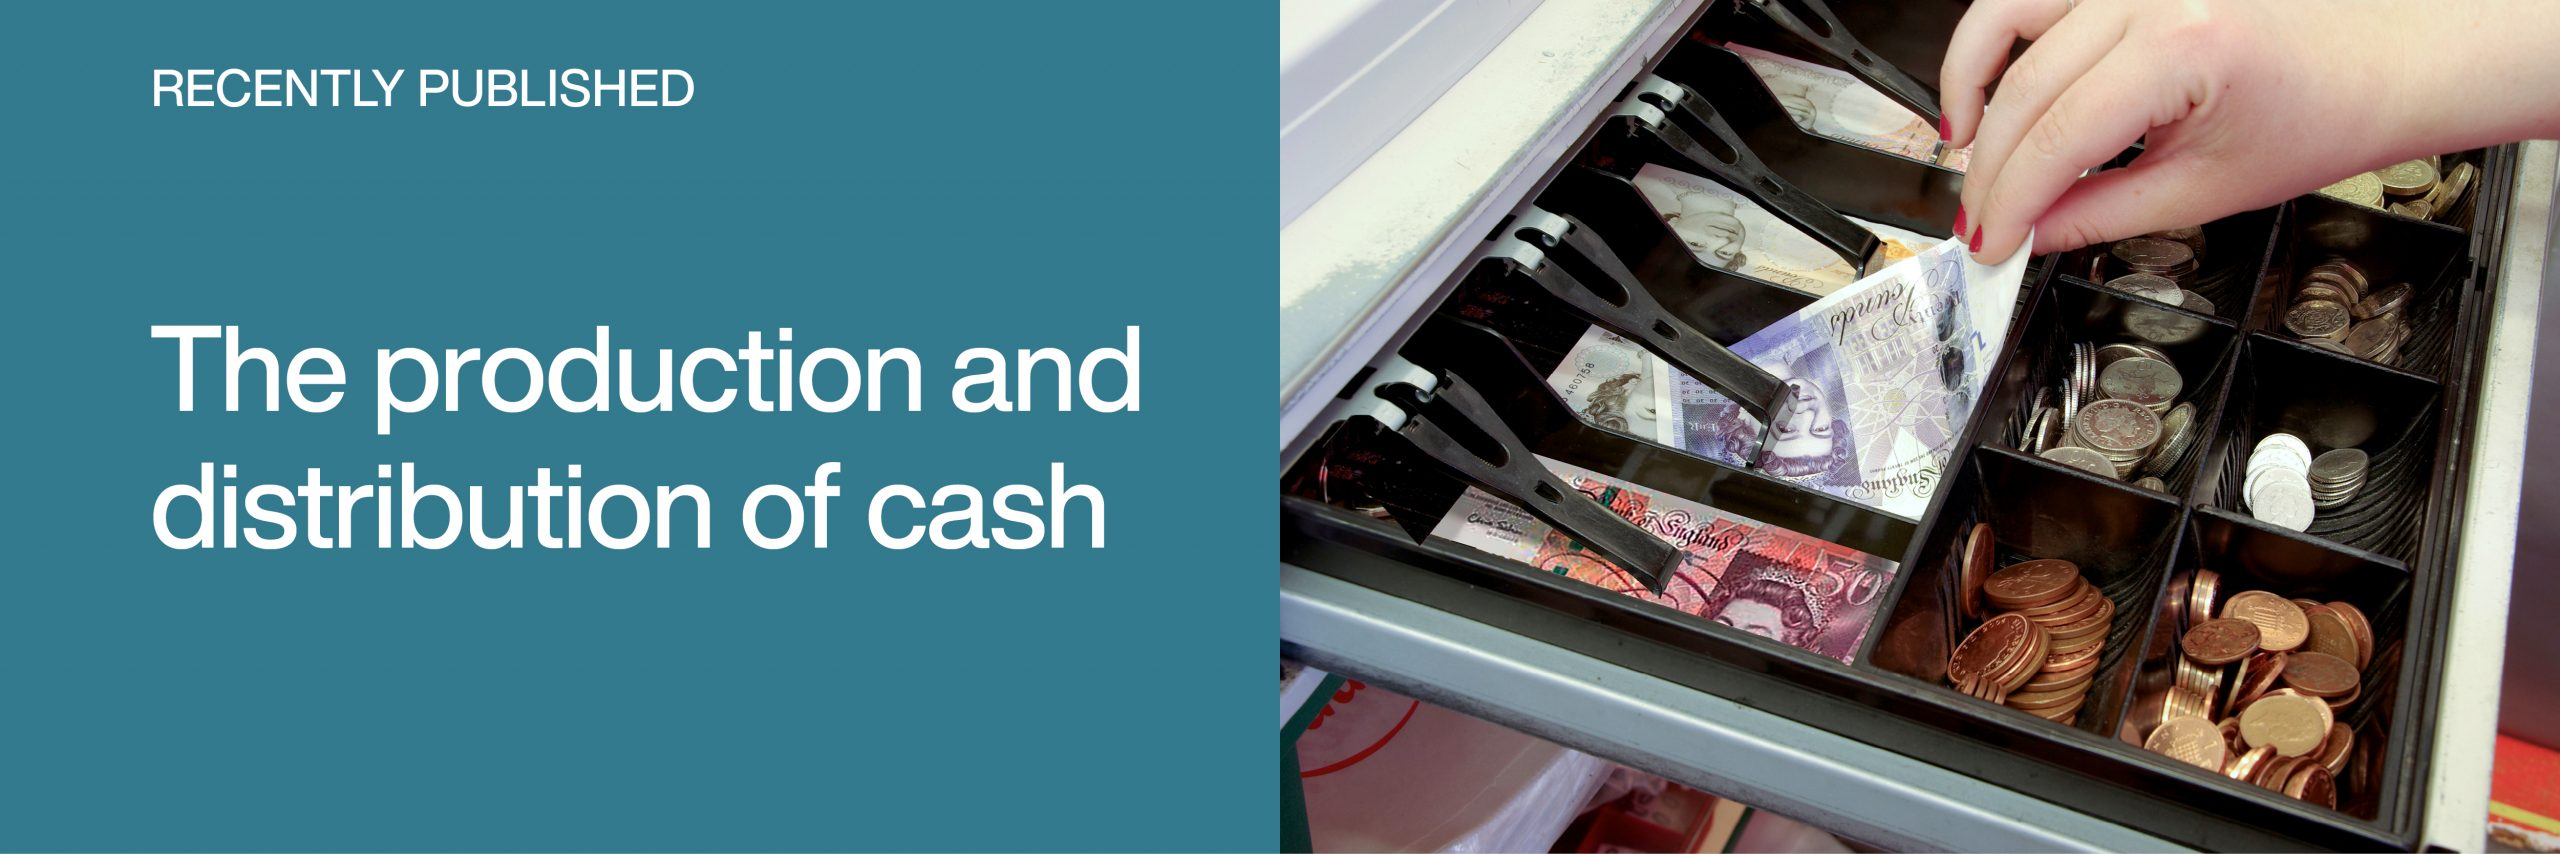 Recently published: The production and distribution of cash